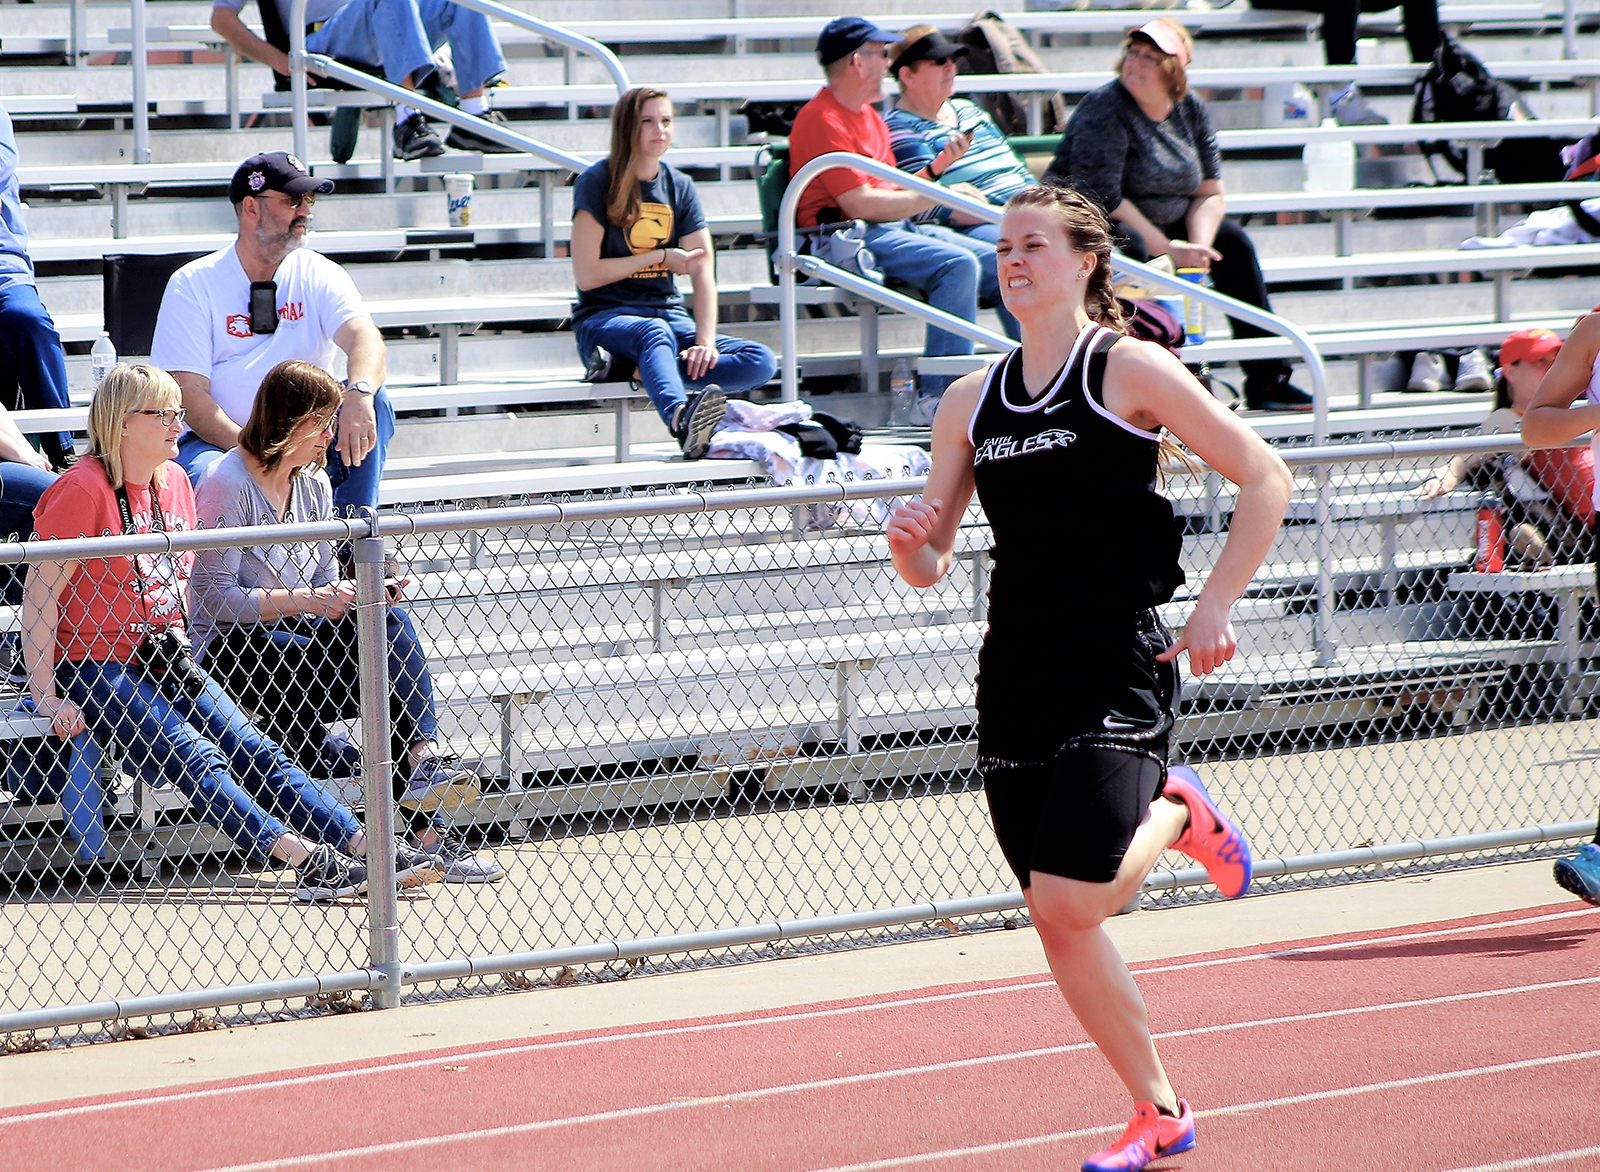 Chelsea Ratliff's time in the 400m is the eighth fastest in the nation in NCCAA competition